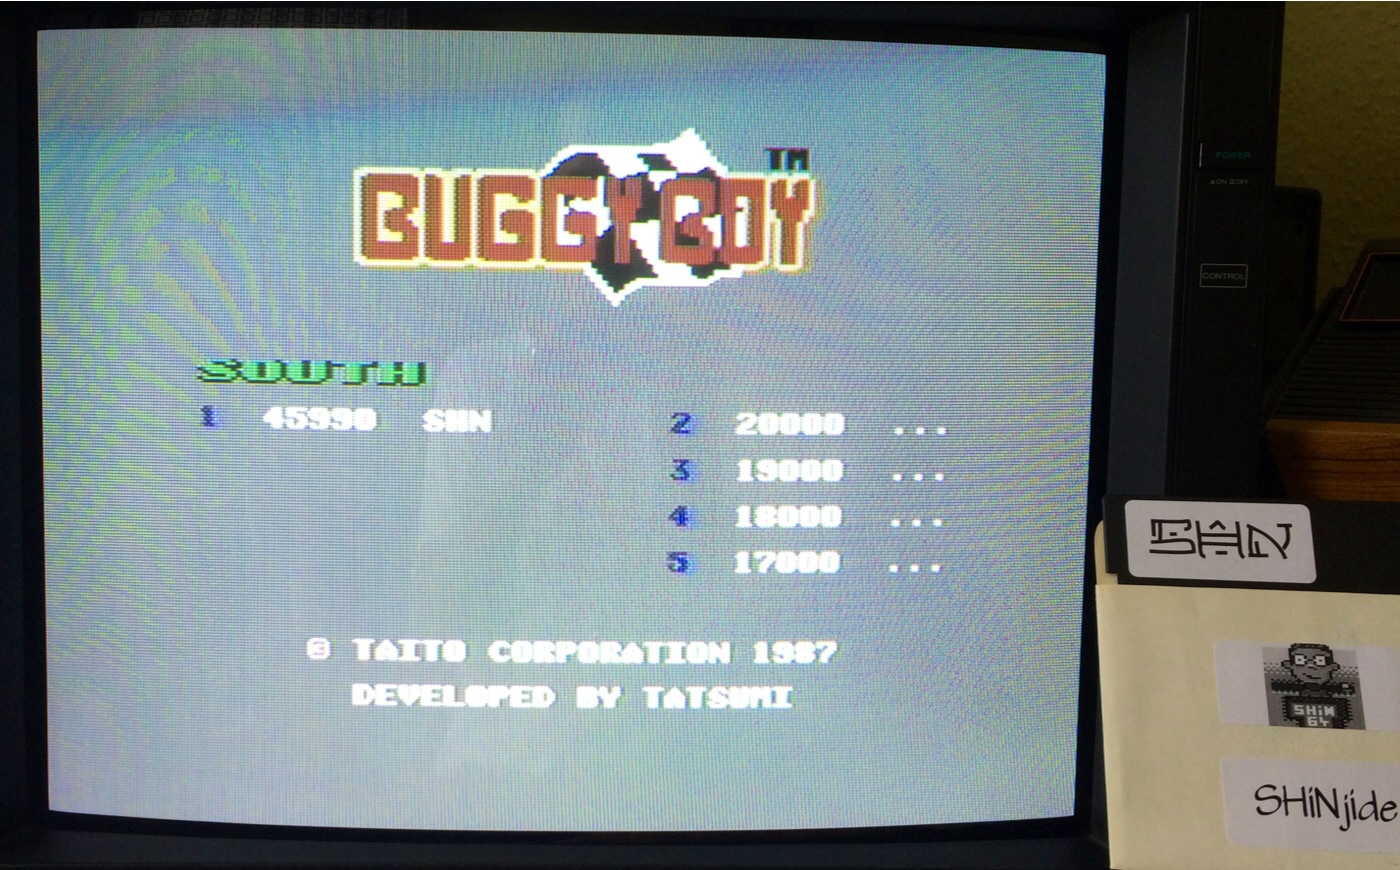 SHiNjide: Buggy Boy: South (Commodore 64) 45,990 points on 2014-08-17 06:23:34